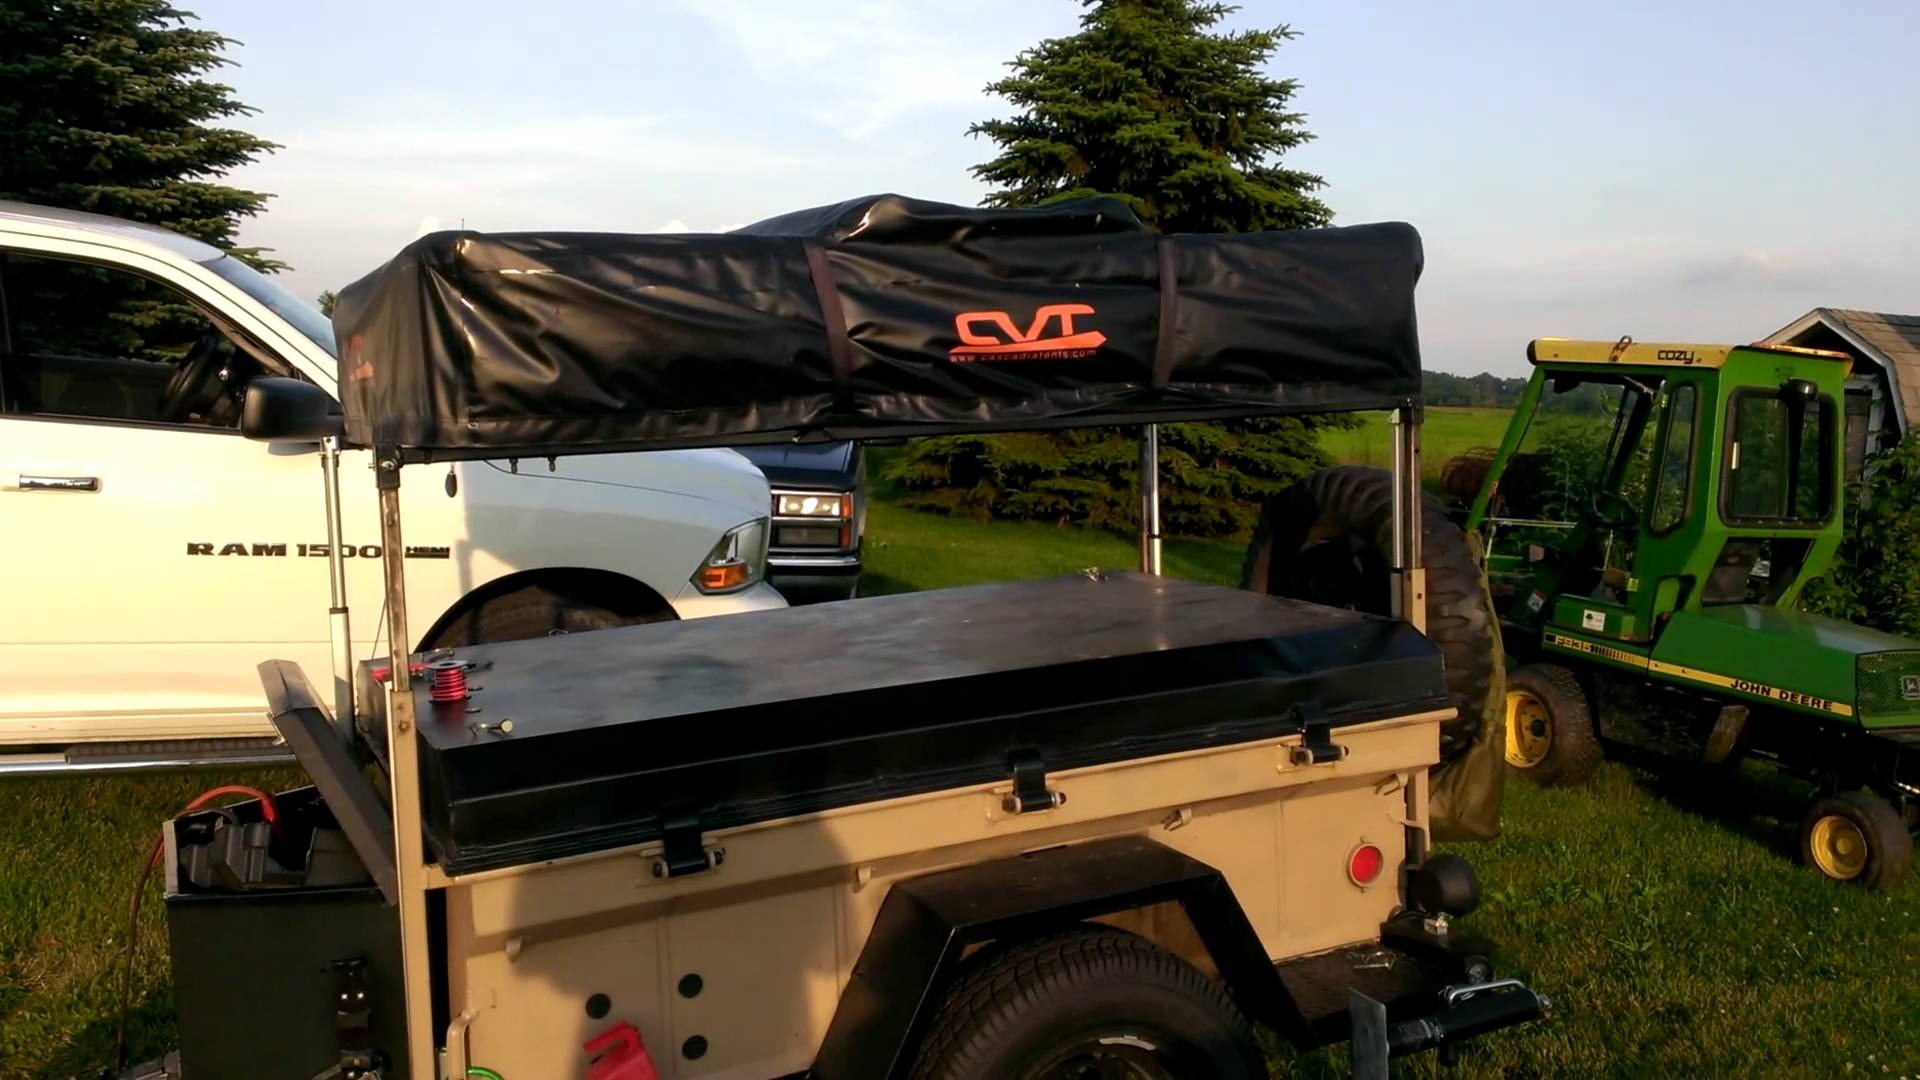 Power lift on expedition trailer - YouTube